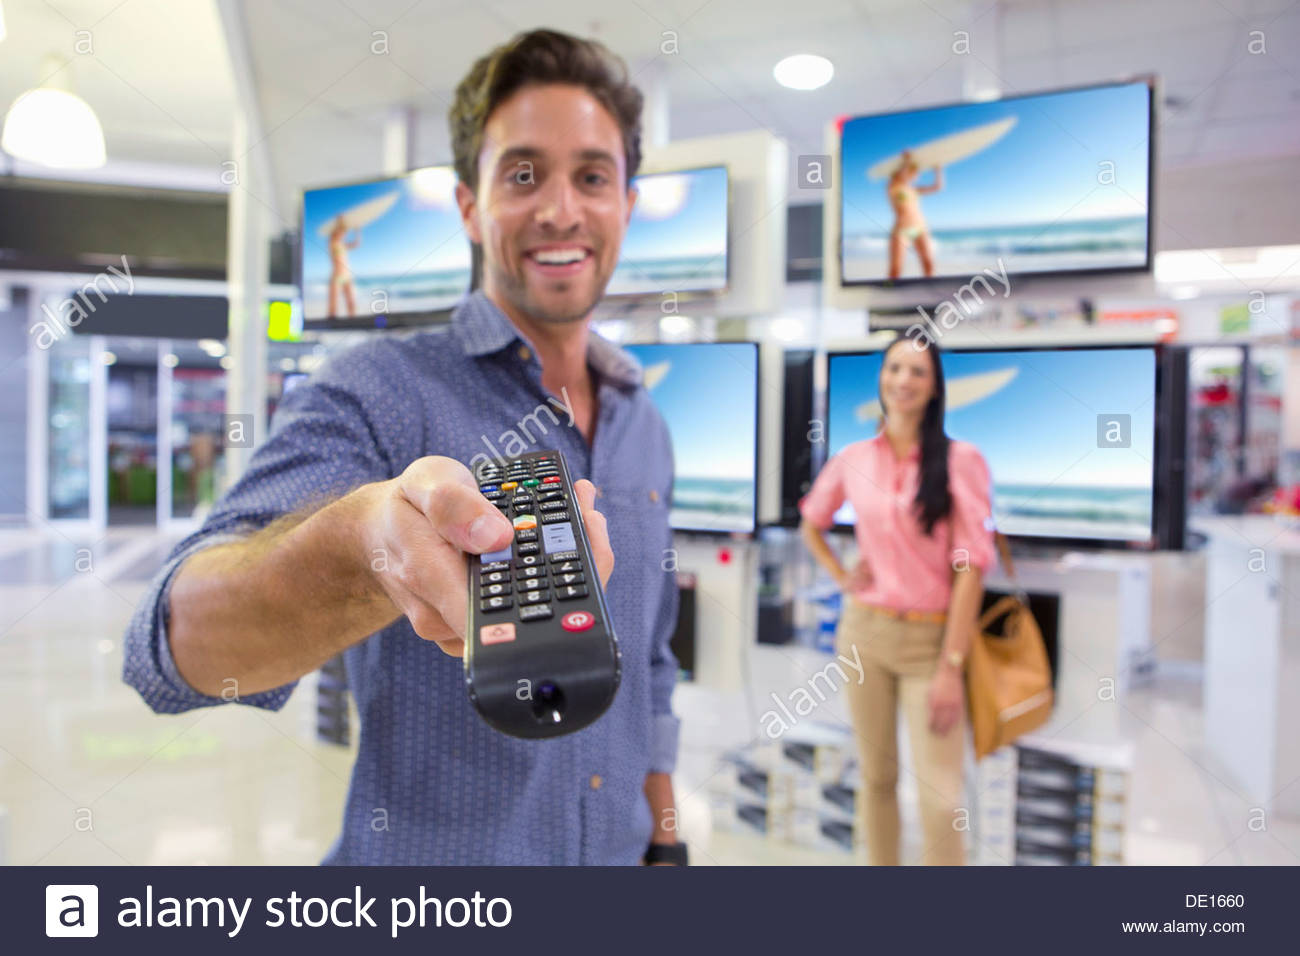 Portrait of smiling man holding remote control in front of televisions in electronics store - Stock Image